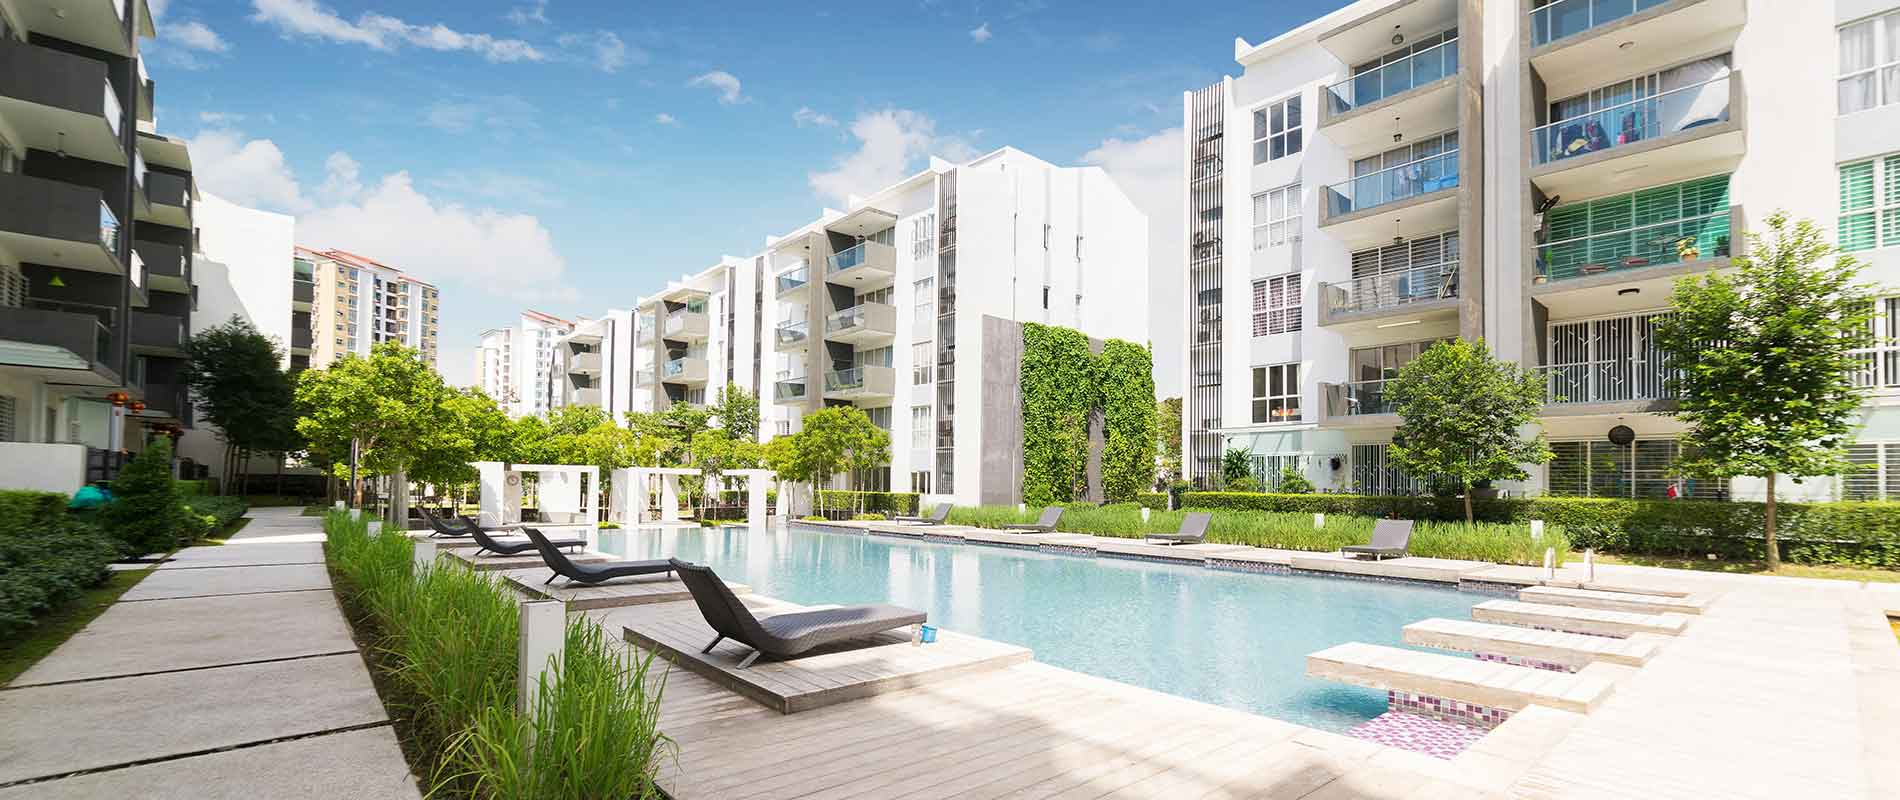 Why New Build Property Developments Aren't Always Worth It